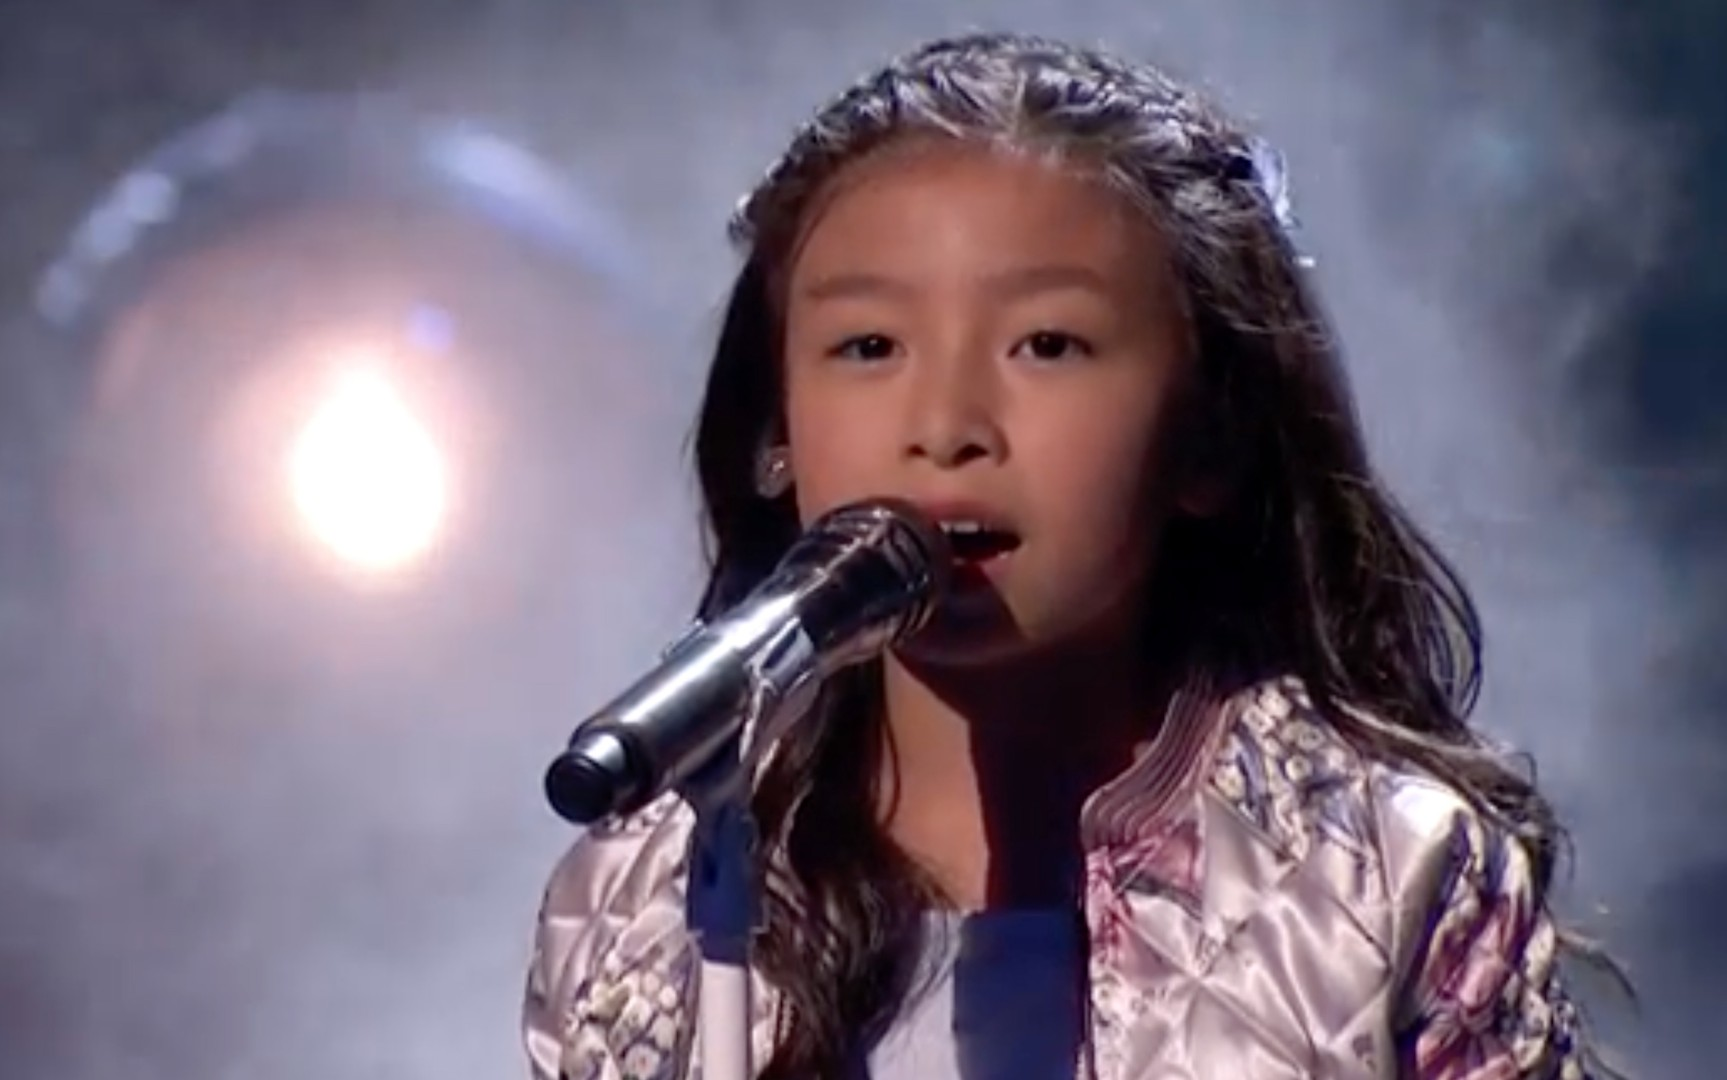 Fans outraged as Hong Kong child star Celine Tam fails to reach finals of  America's Got Talent | South China Morning Post